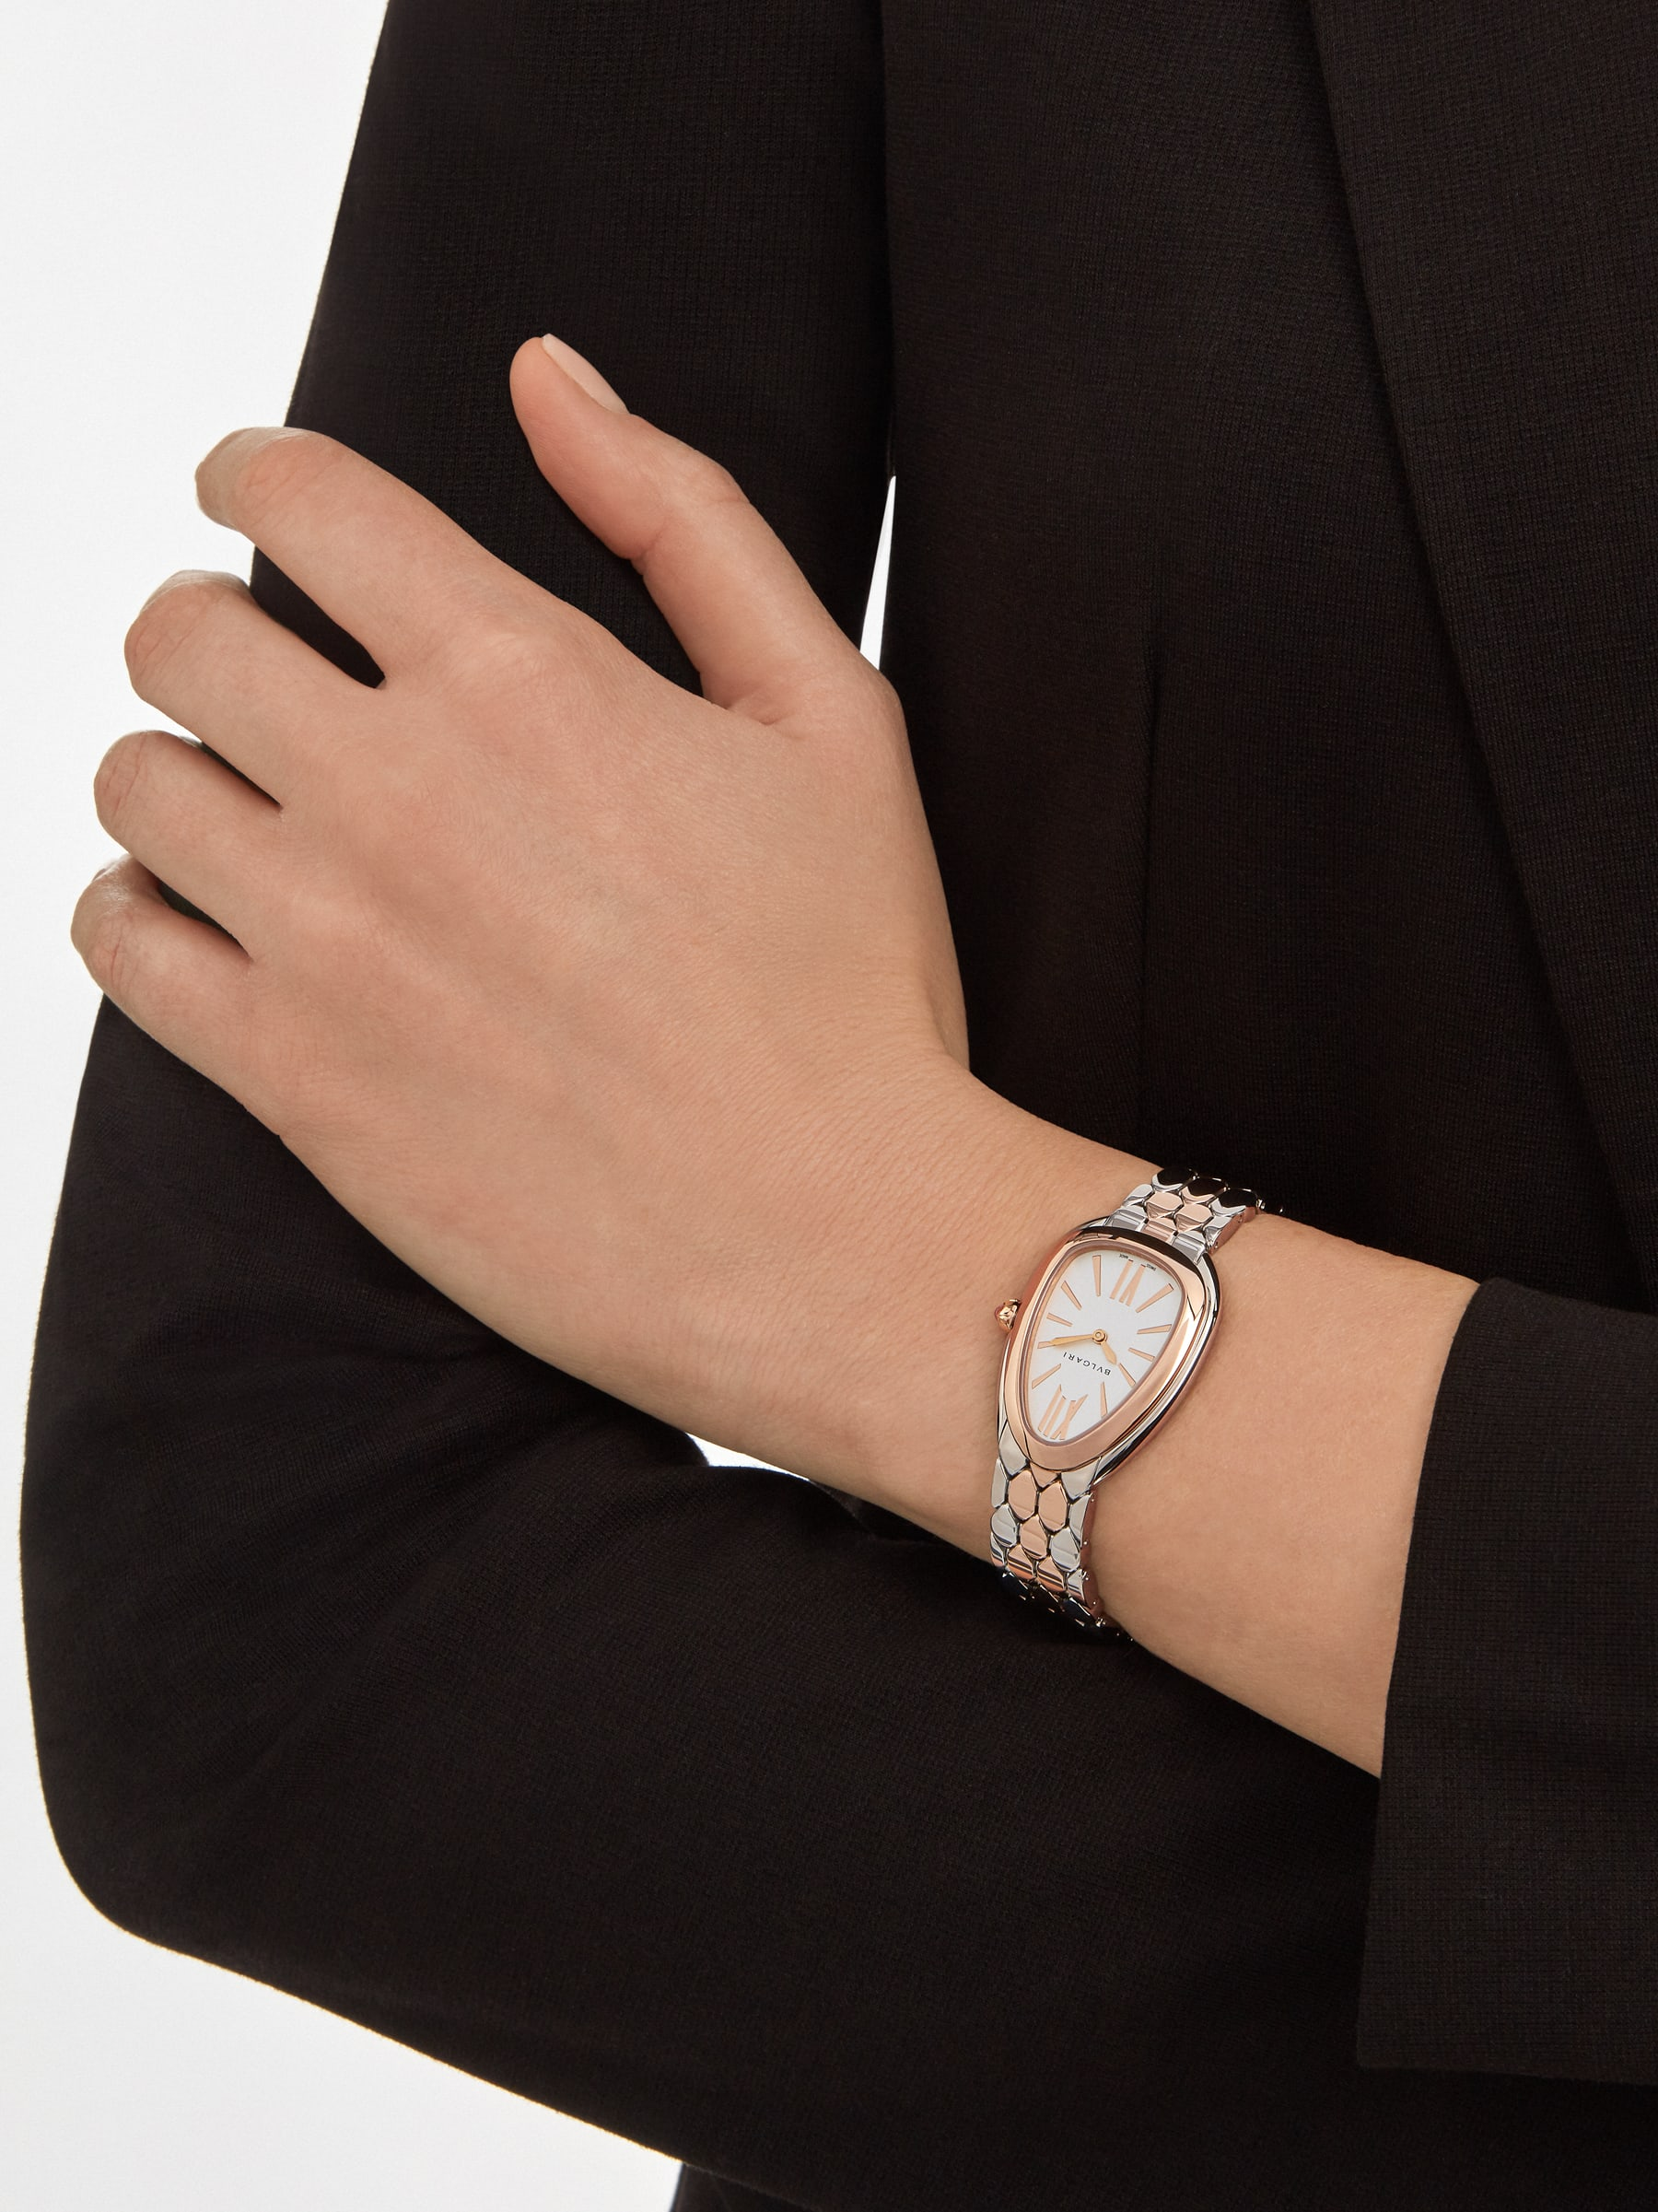 Serpenti Seduttori watch in stainless steel and 18 kt rose gold case and bracelet, with white silver opaline dial 103277 image 4